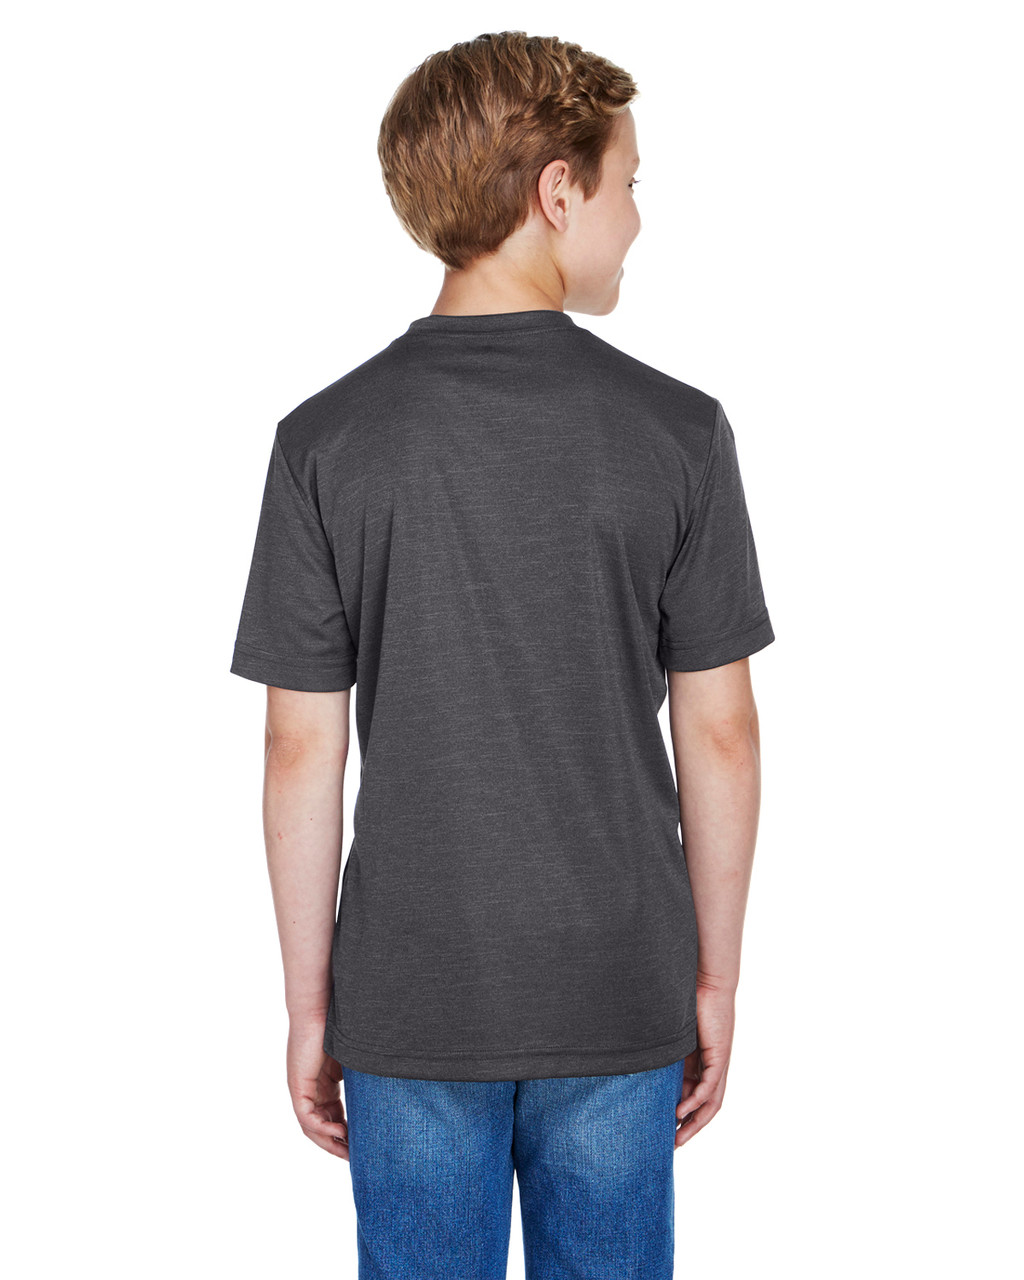 Dark Grey Heather - Back, TT11HY Team 365 Youth Sonic Heather Performance T-Shirt | BlankClothing.ca